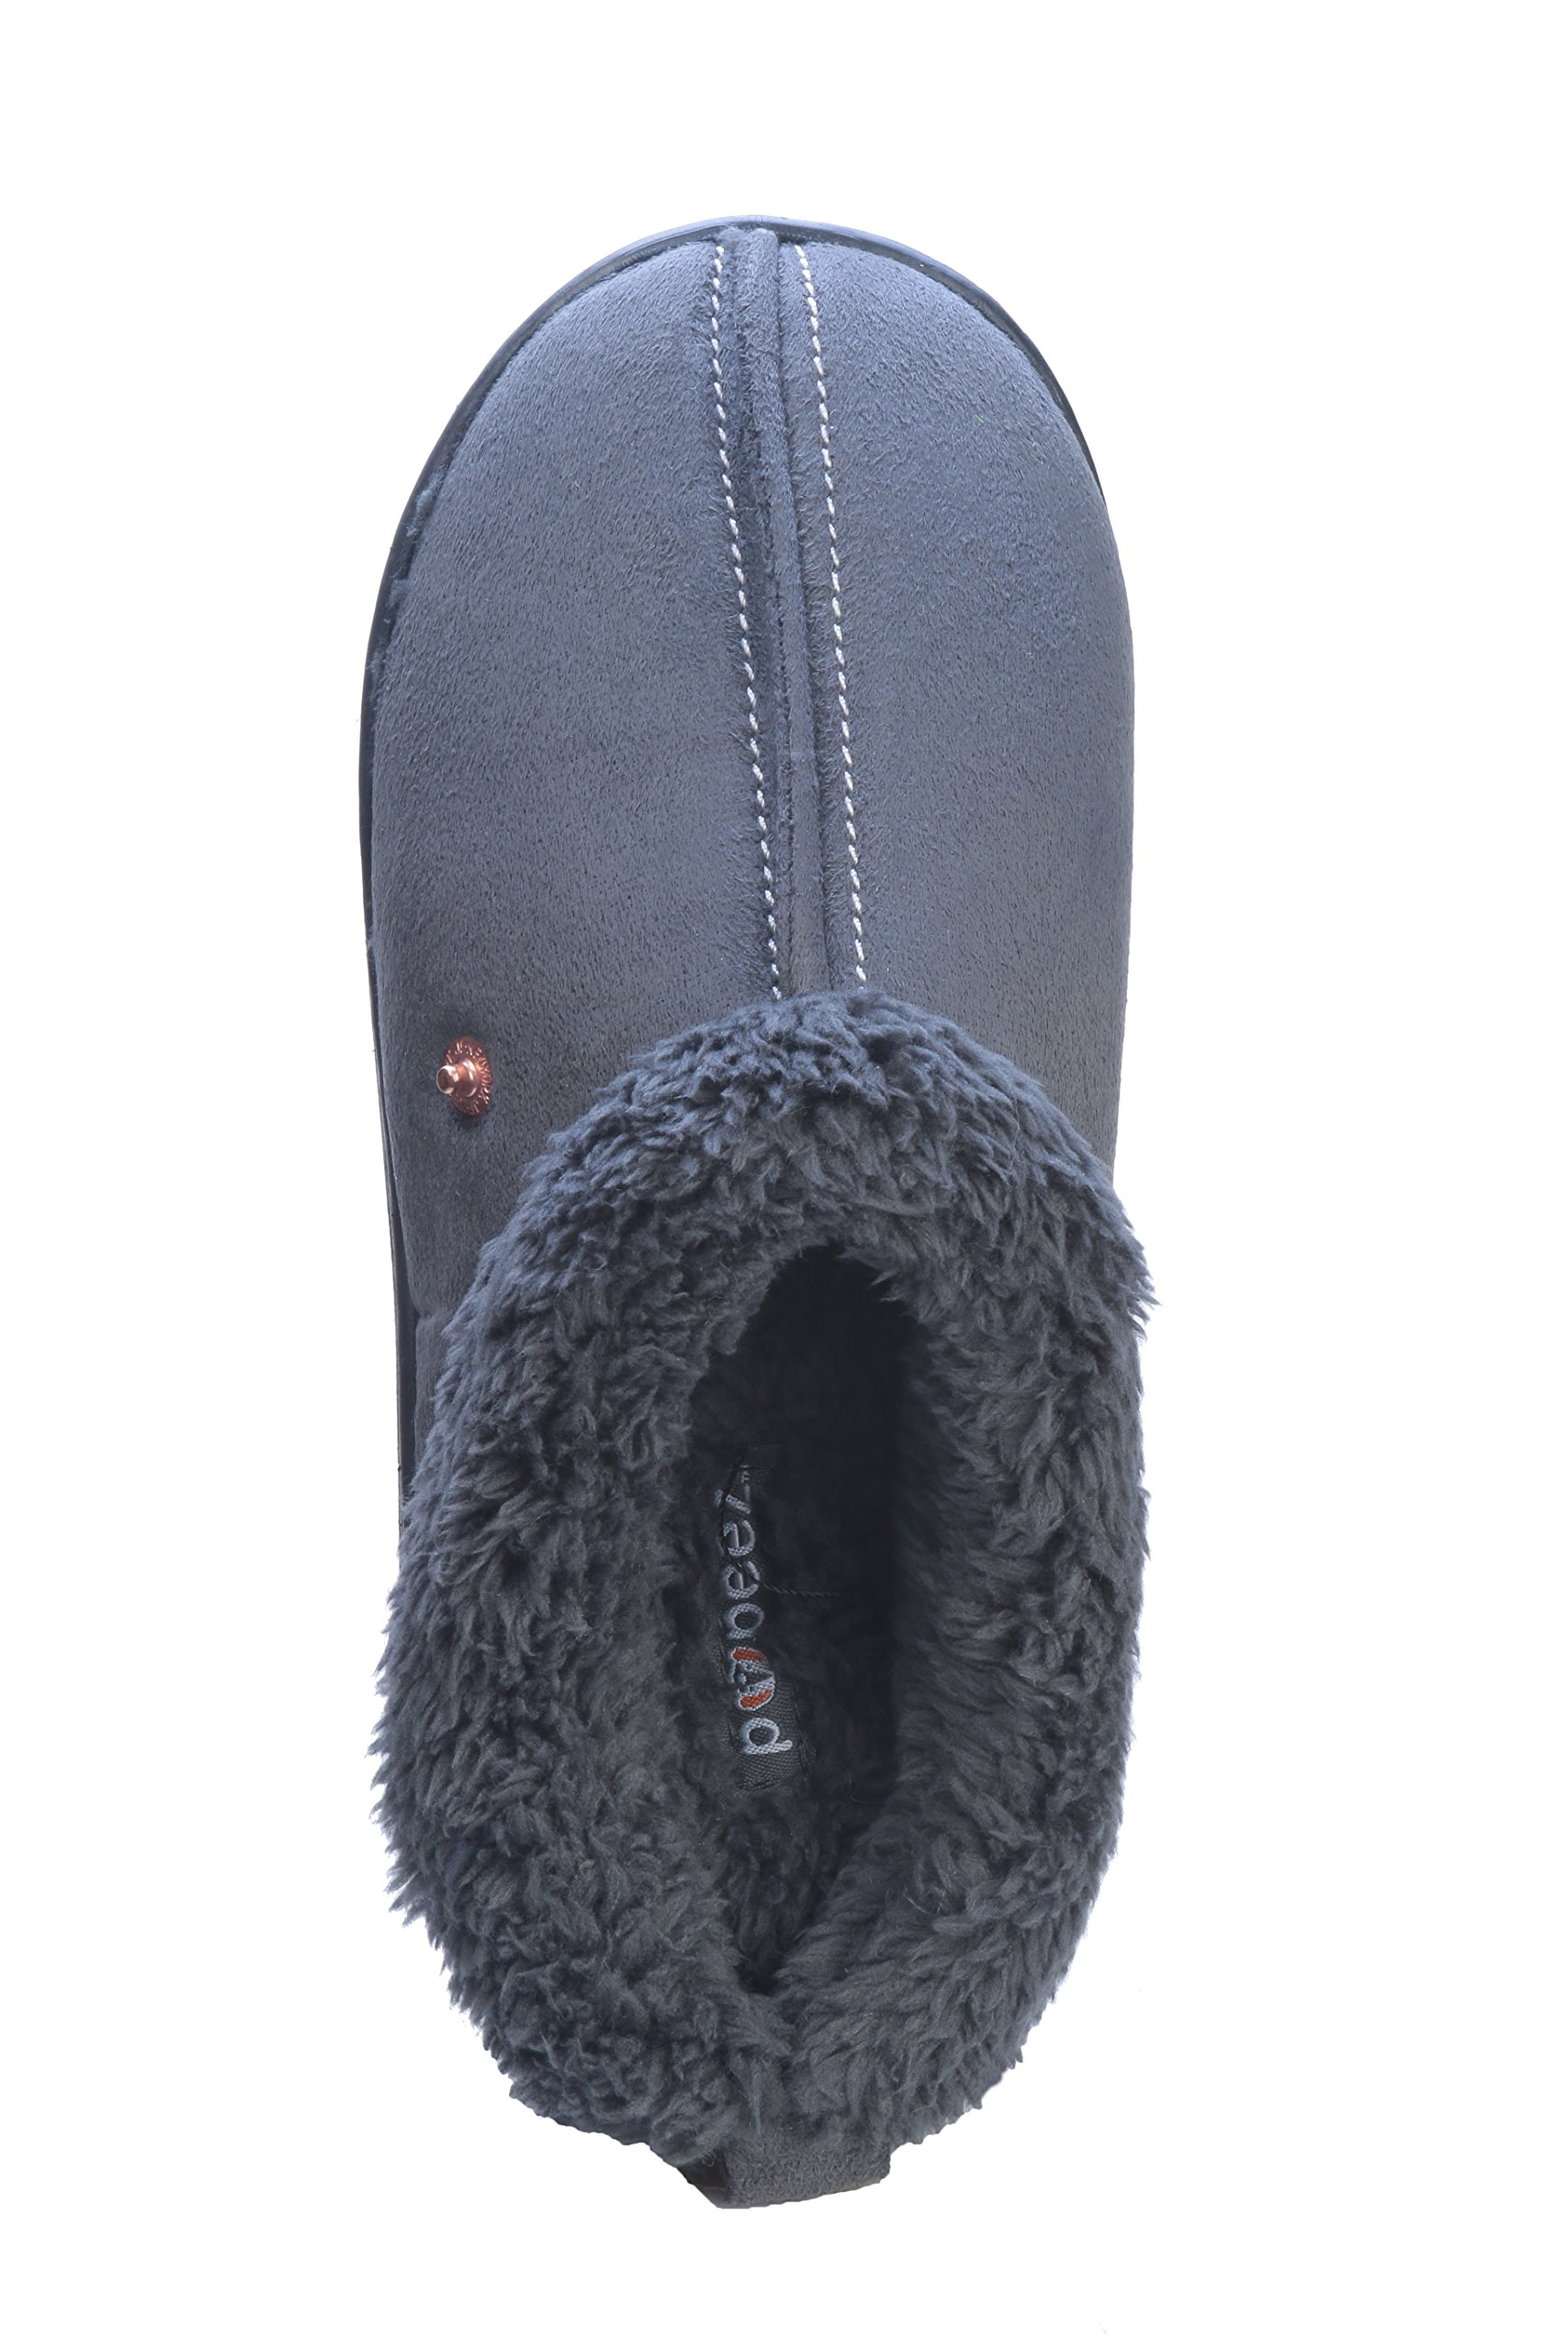 Pupeez Boys Extra Comfort and Warmth Kids Bedroom Slippers, 2-3 M US Little Kid, Gray by Pupeez (Image #3)